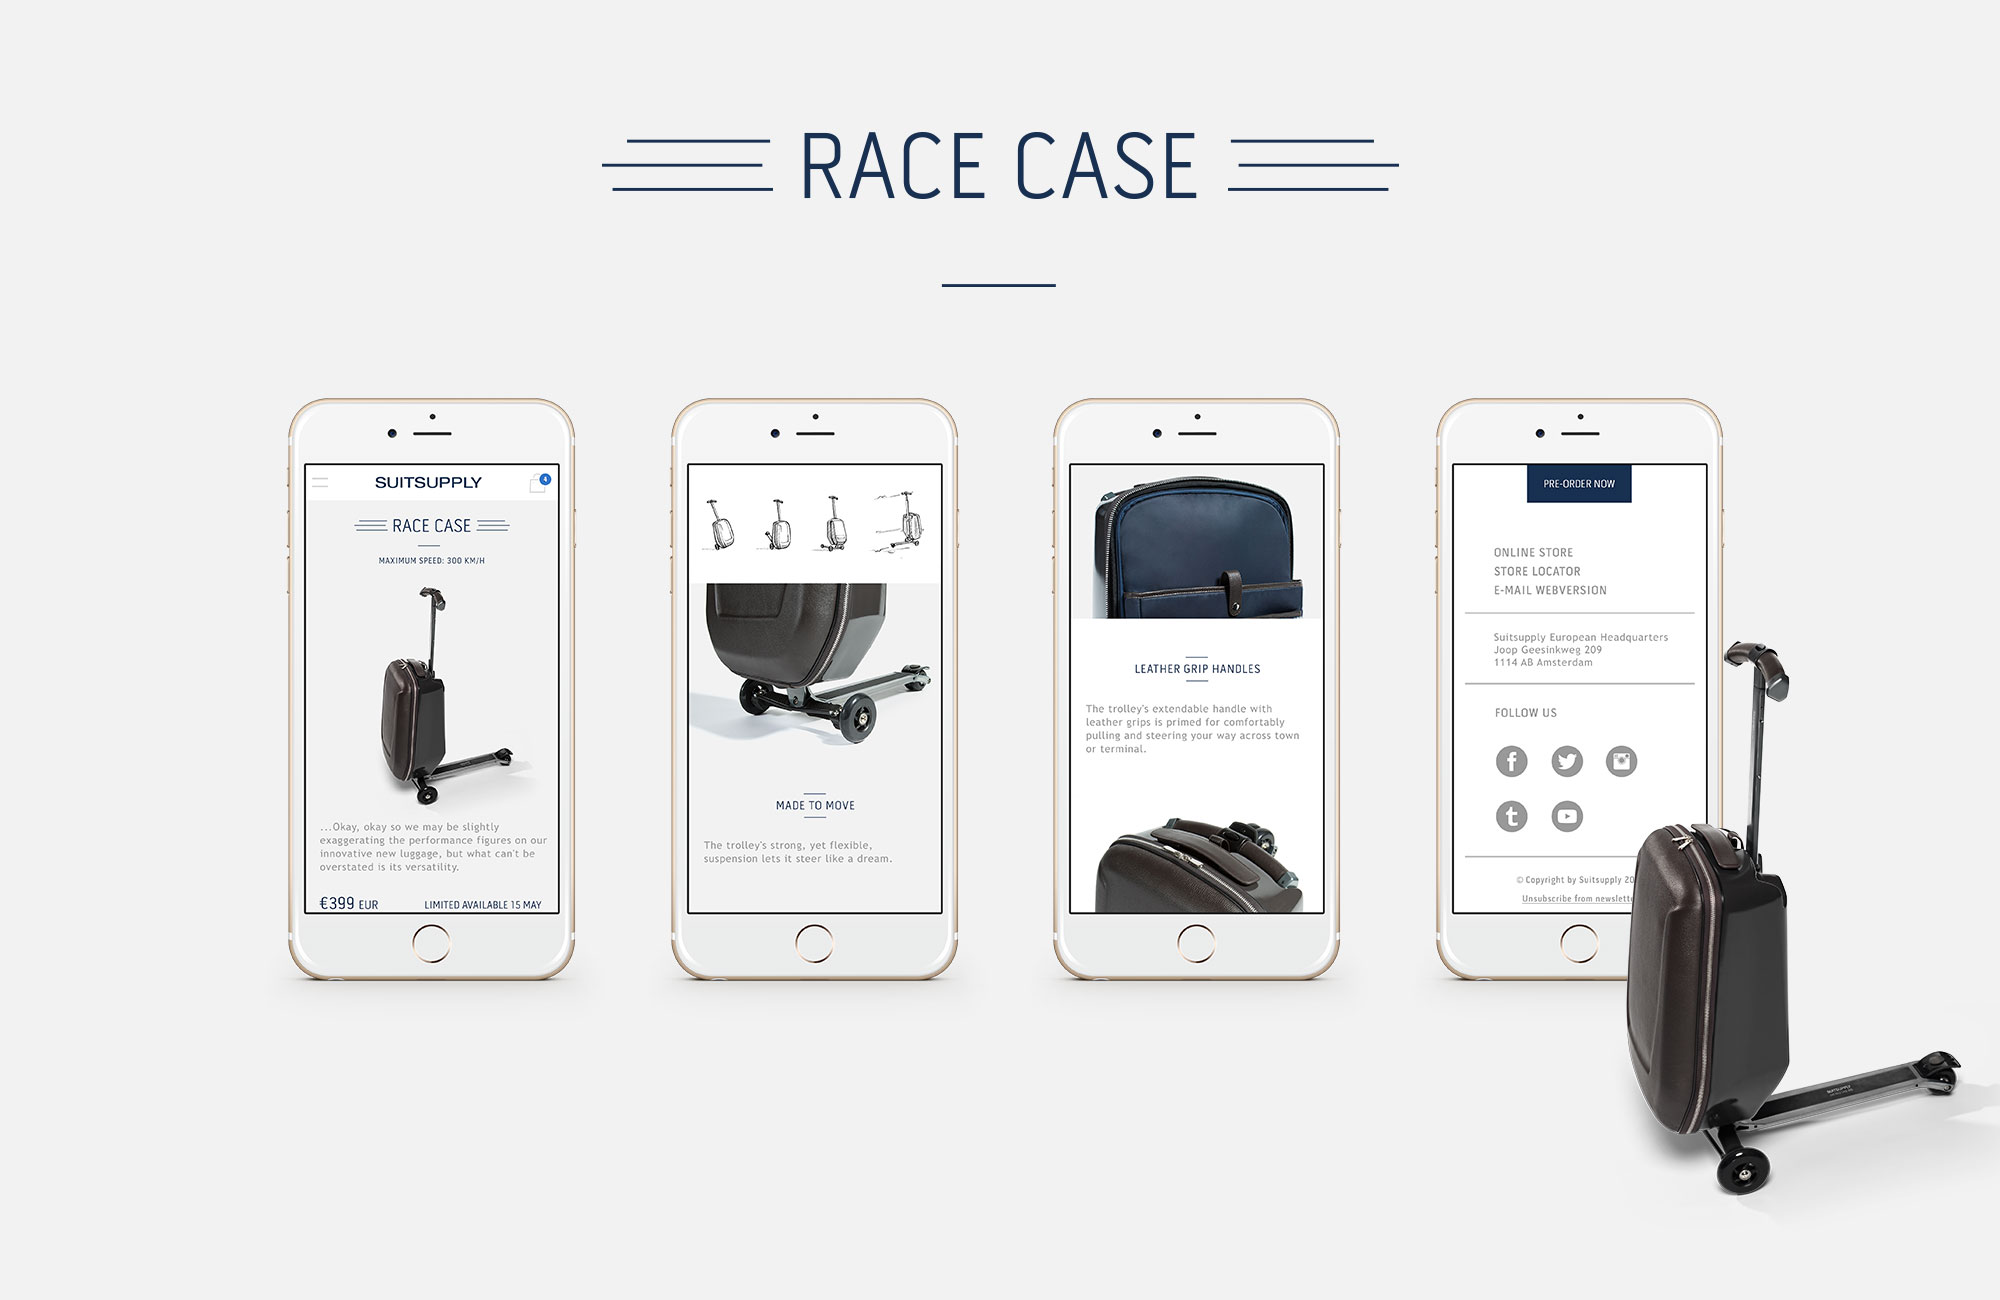 Suitsupply_racecase